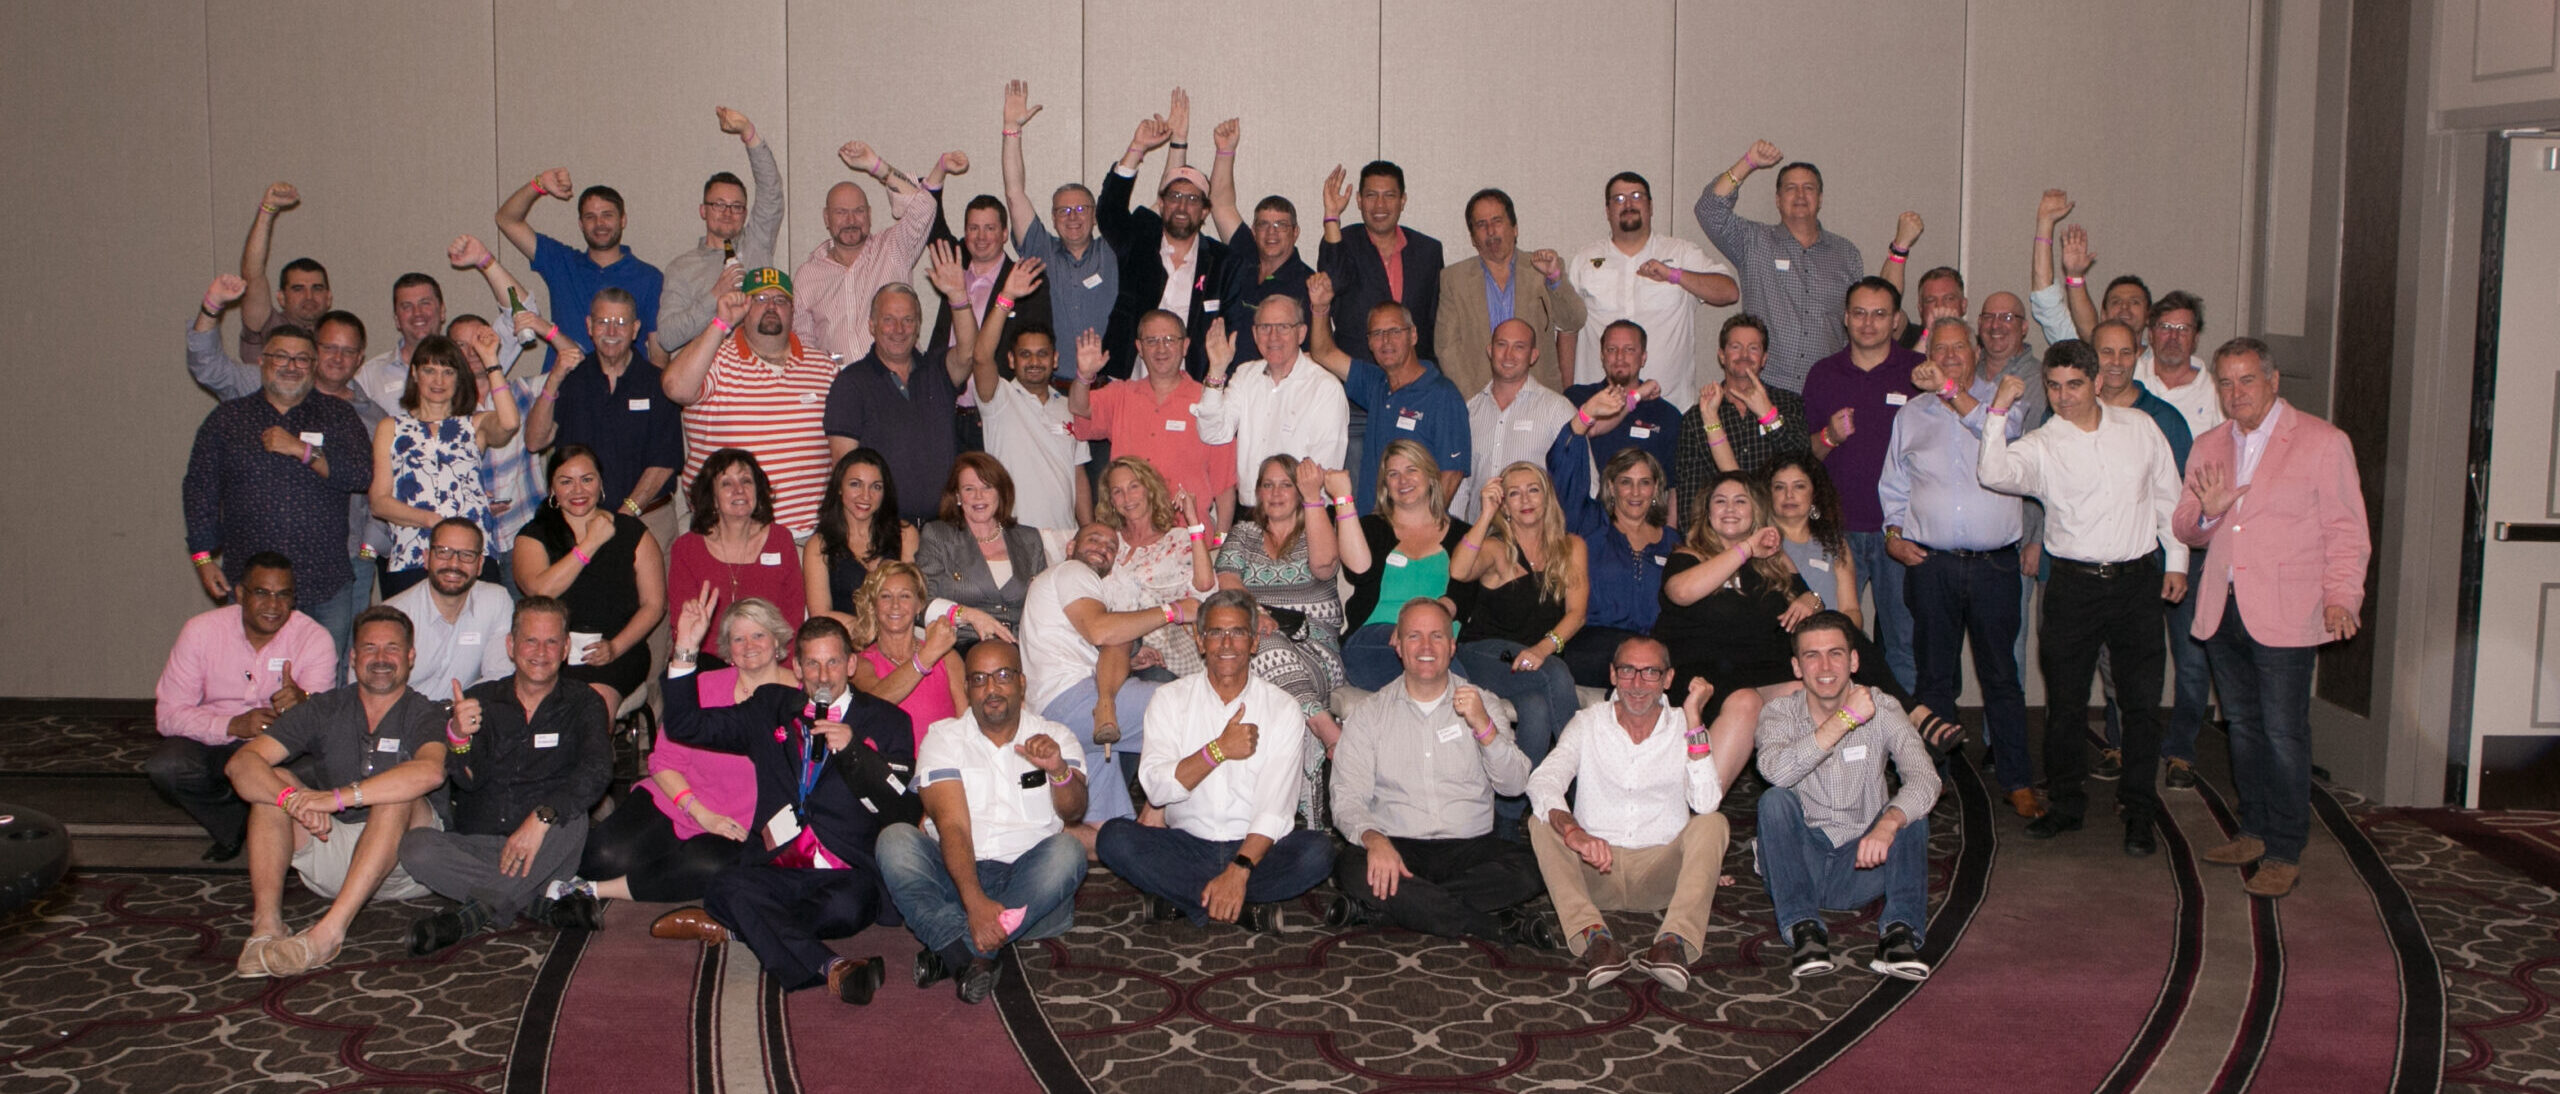 2017 trackresults poker players group photo with pink wristbands